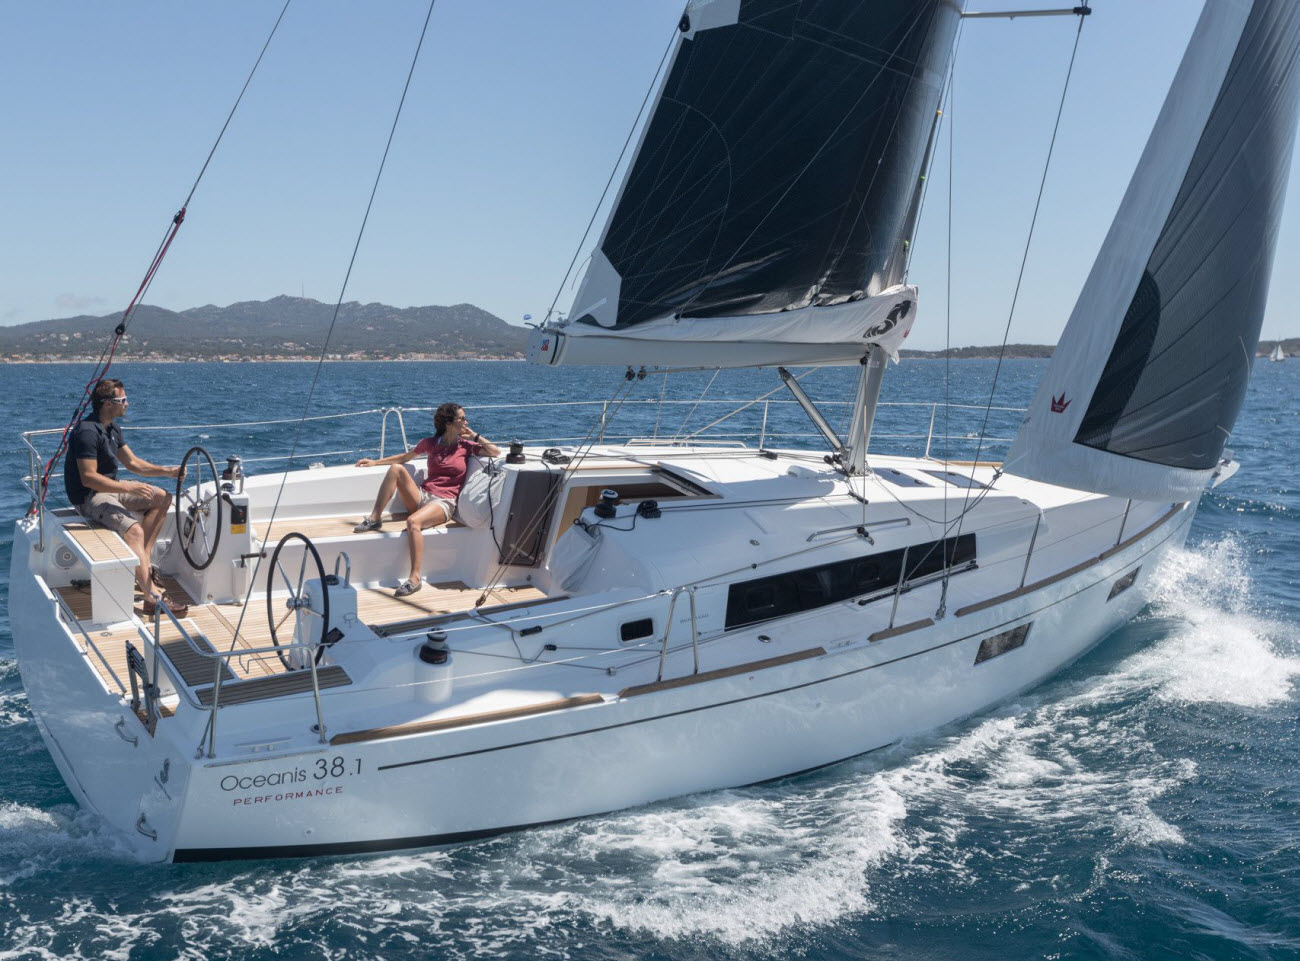 Who is charter boat ownership for?